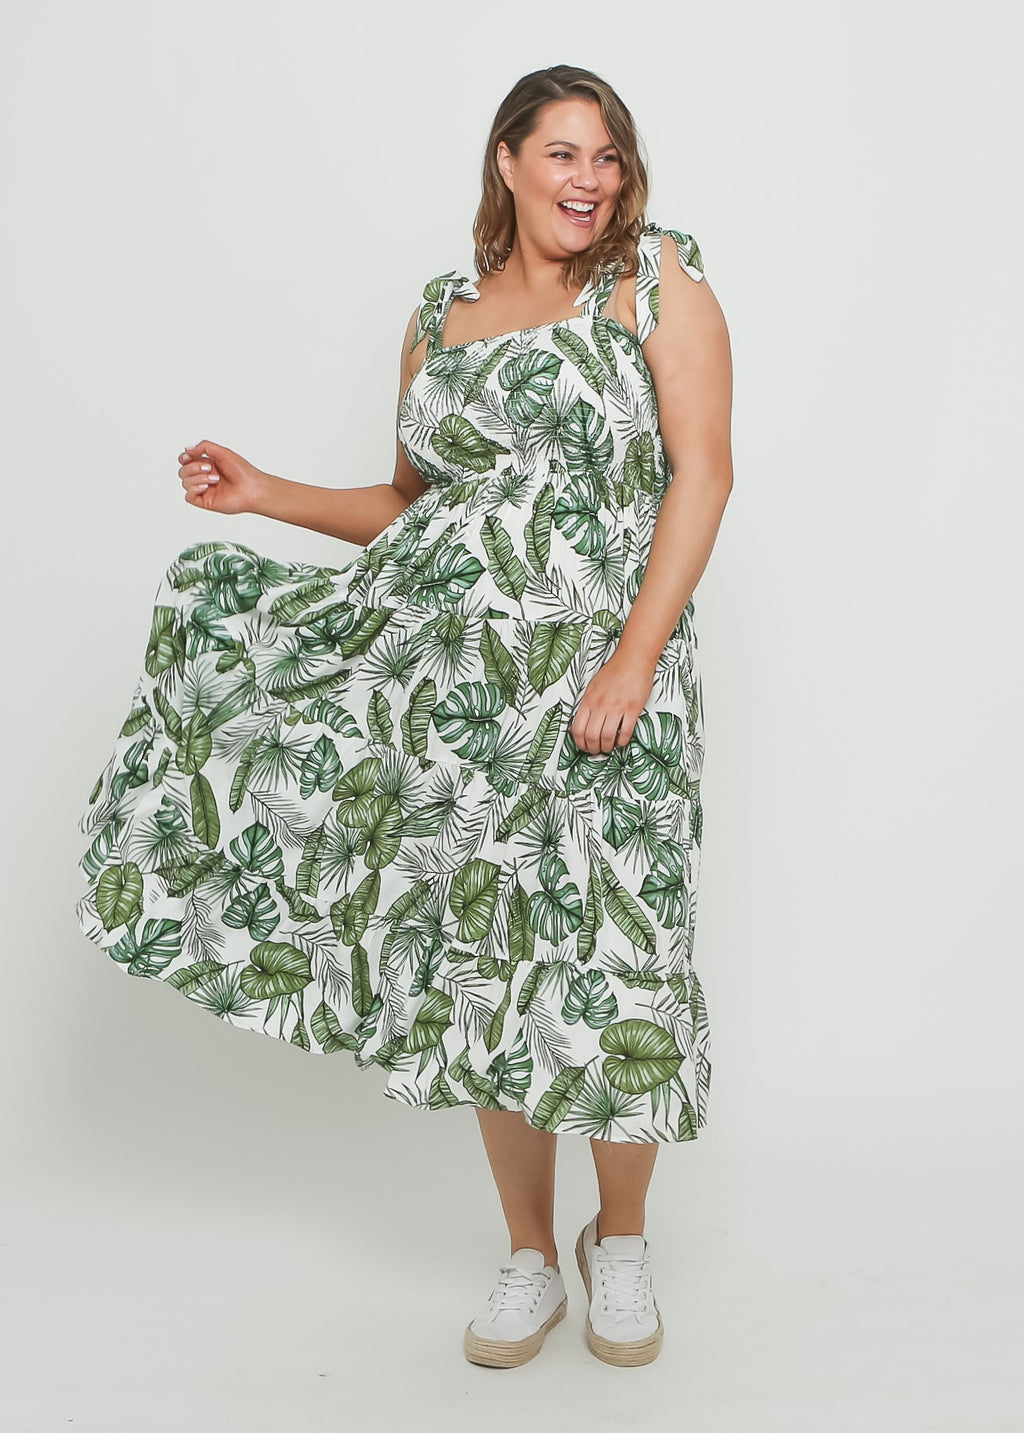 JAY DRESS - GREEN TROPICAL